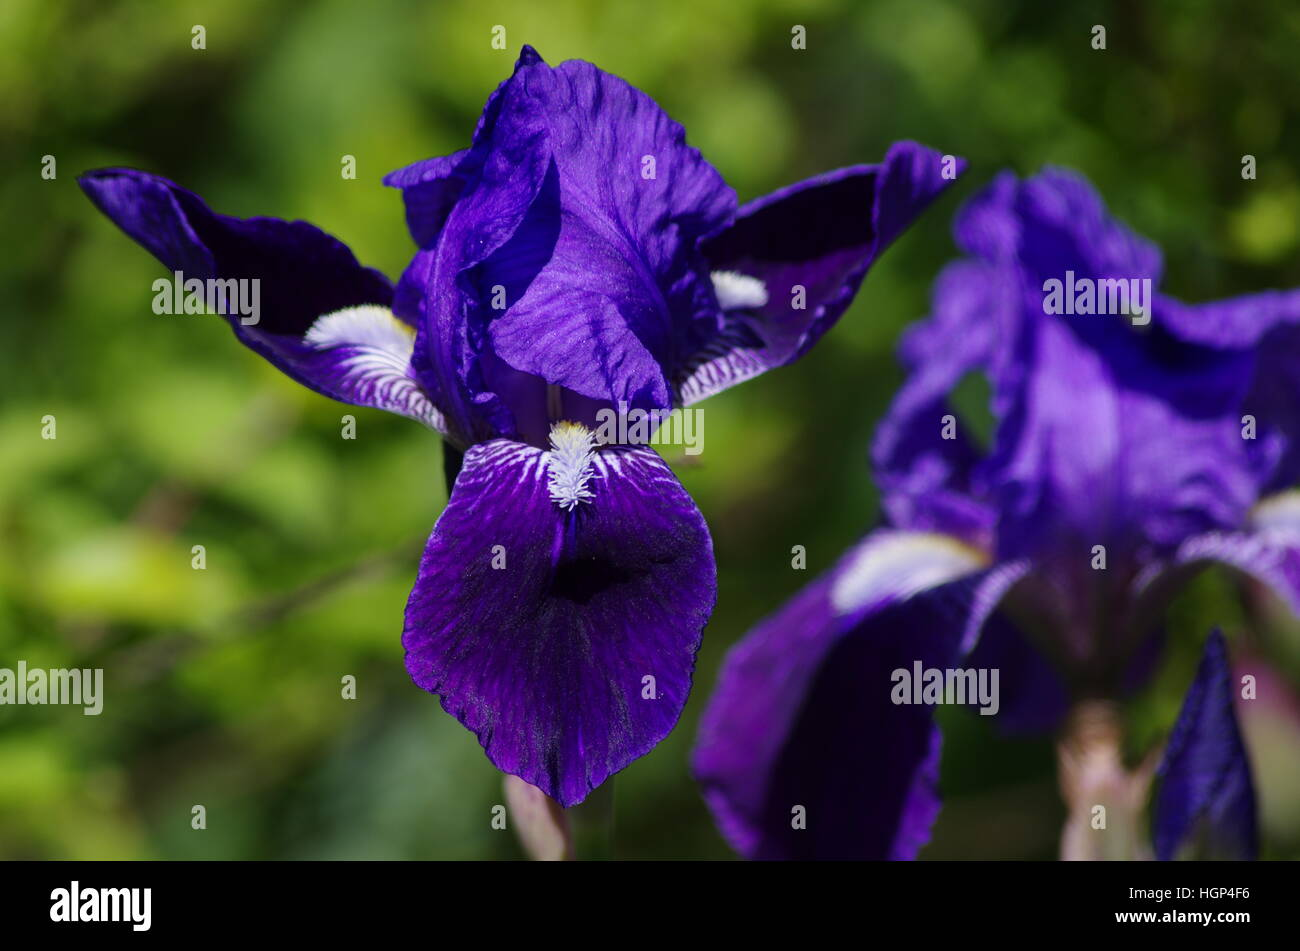 White iris flowers stock photos white iris flowers stock images bright purple yellow and white iris flowers one focused in foreground and the other blurry in izmirmasajfo